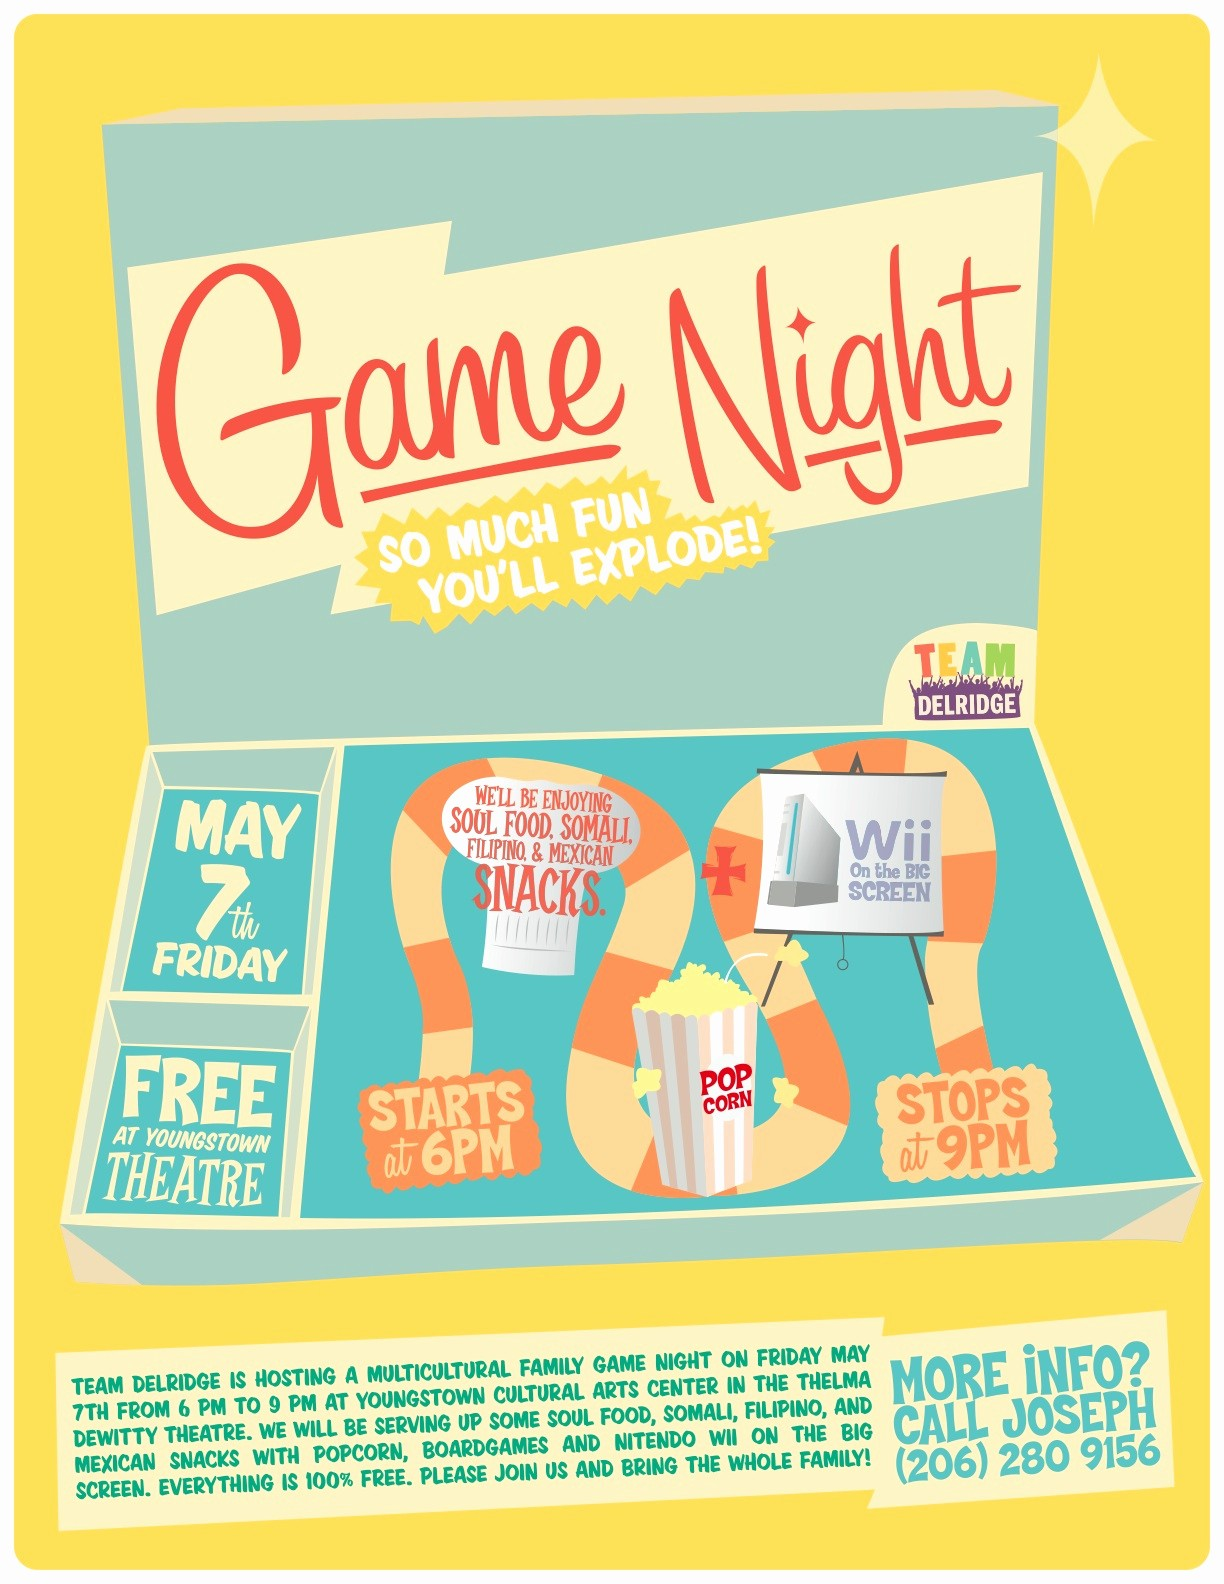 Family Fun Night Flyer Template Luxury Game Night Flyer Template Yourweek Eca25e